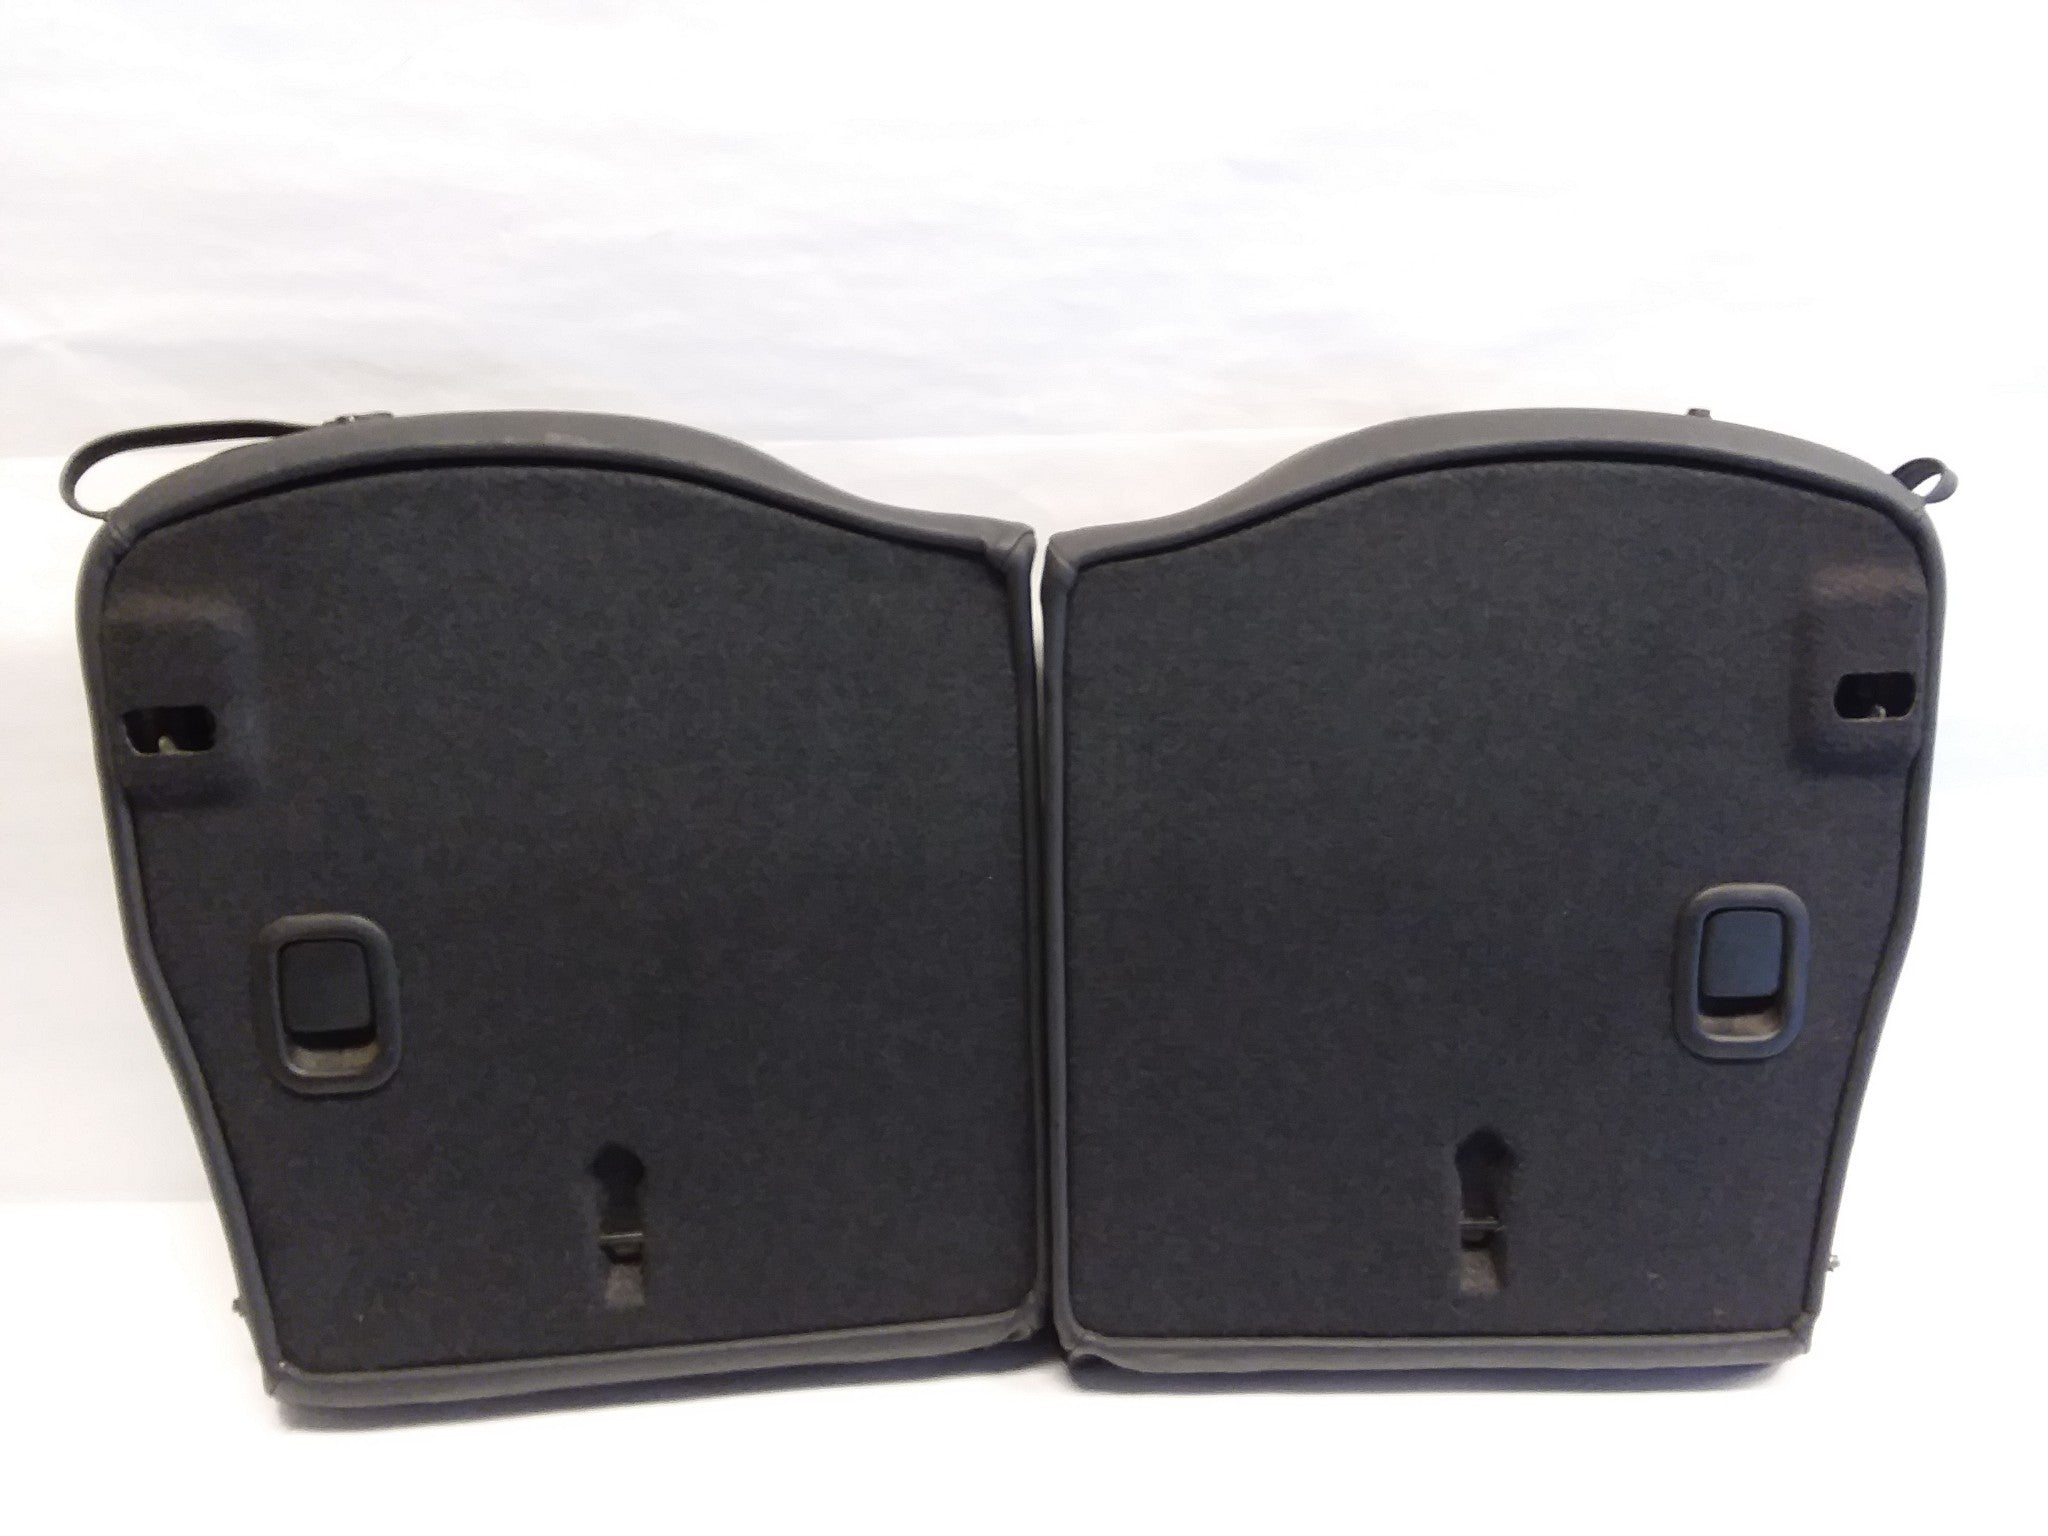 2005 - 2008 Mini Cooper Convertible R52 Rear Seat Backrests Black Leather OEM